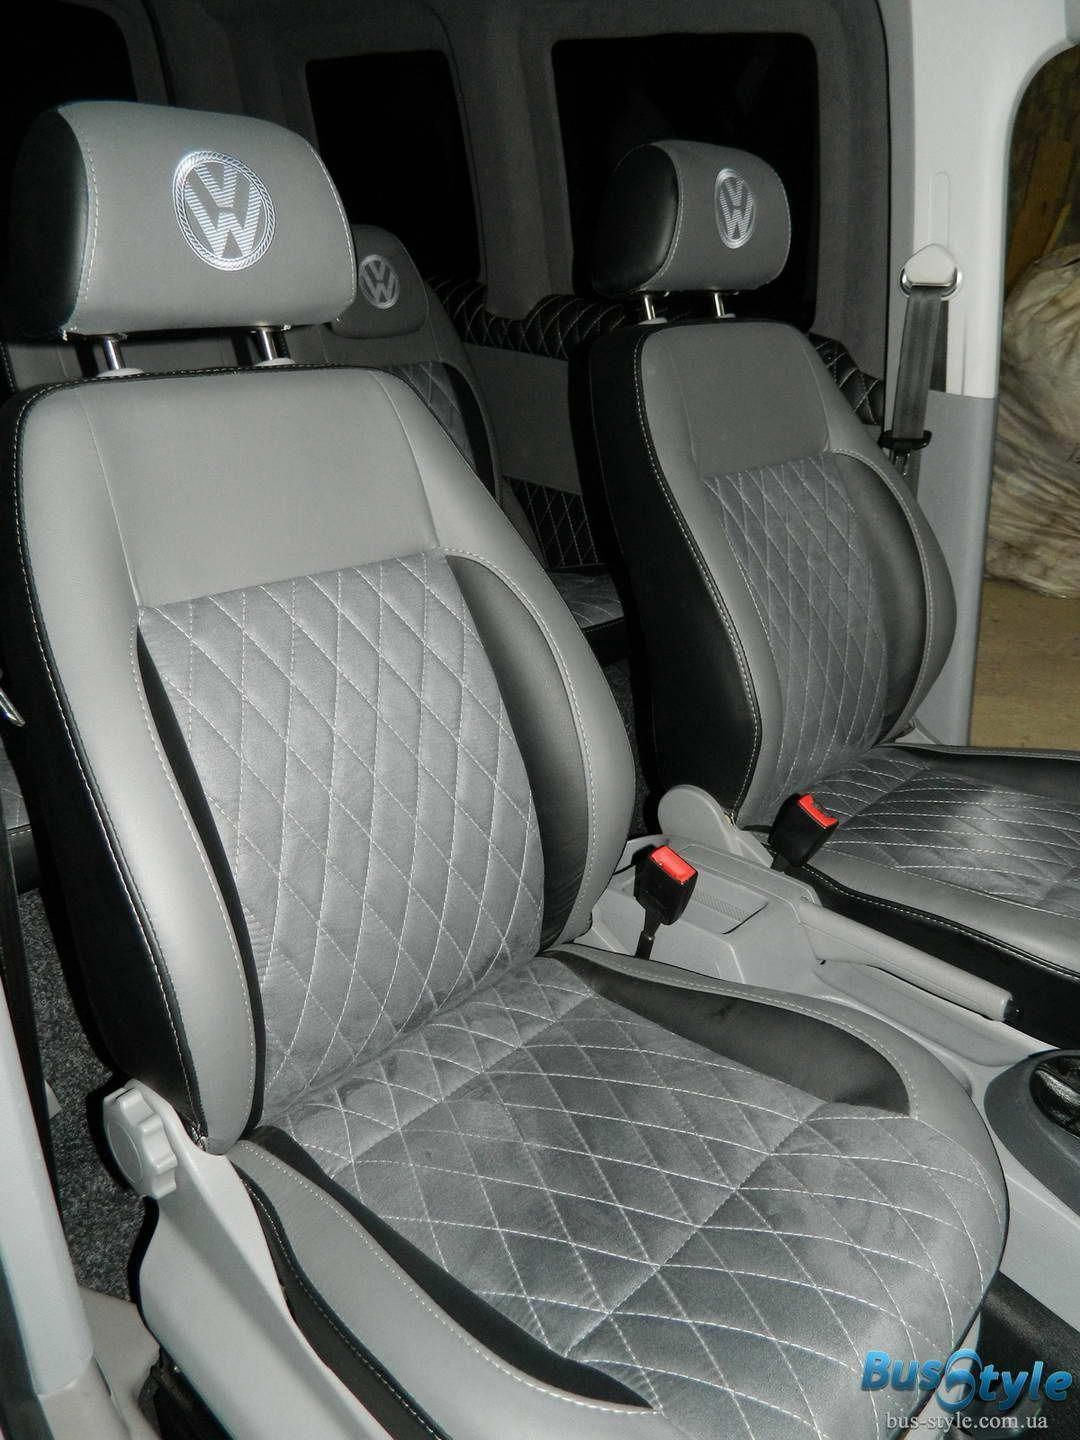 MERCEDES SPRINTER VW CRAFTER   VAN SEAT COVER  DARK GREY ALCANTARA PERFECT FIT